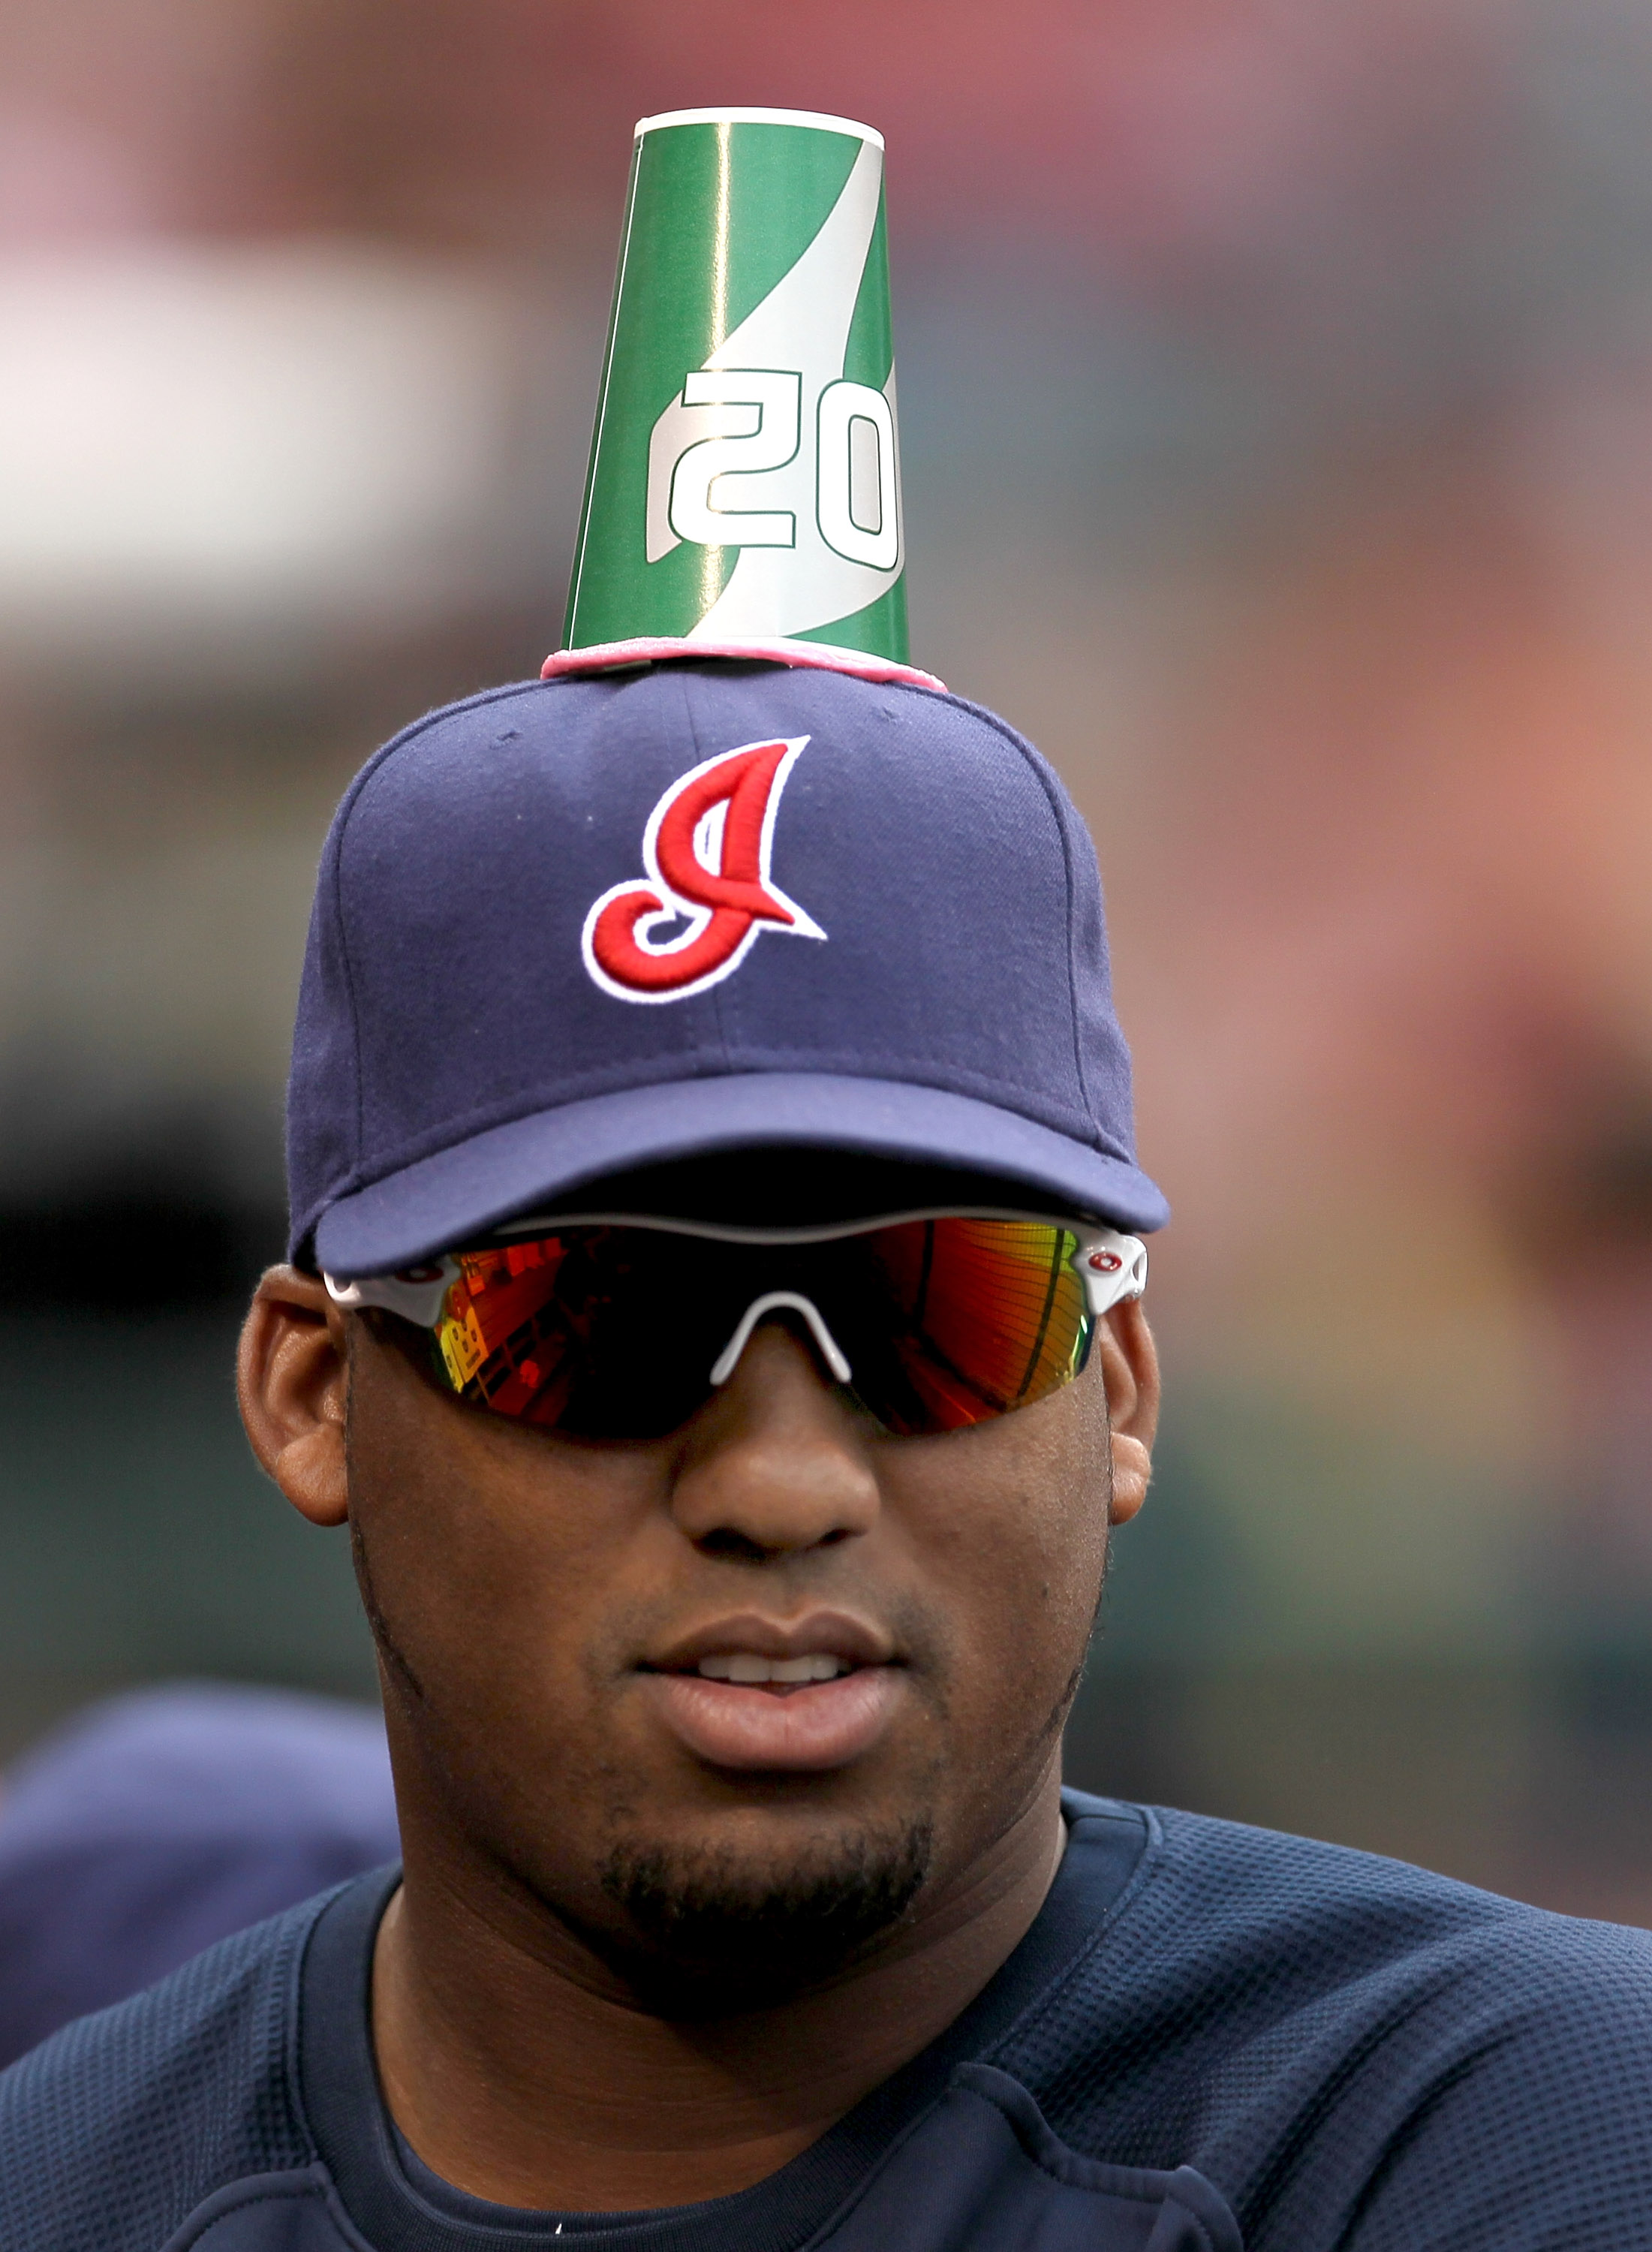 ANAHEIM, CA - SEPTEMBER 8:  Pitcher Fausto Carmona #55 of the Cleveland Indians unknowingly wears a paper cup stuck to his hat put there by teammates as a prank during the game with the Los Angeles Angels of Anaheim on September 8, 2010 at Angel Stadium i